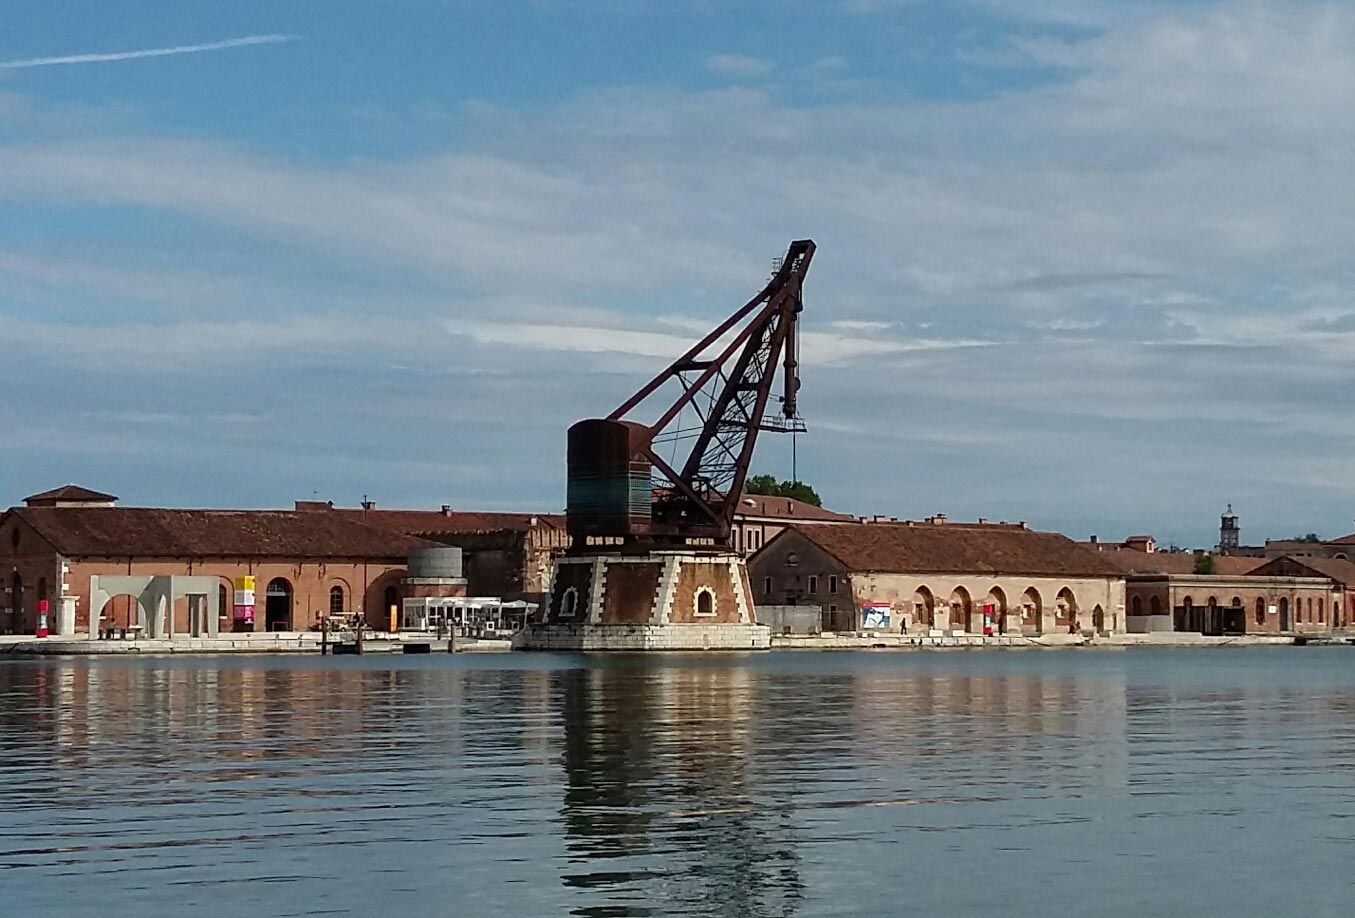 Long shot of the Arsenale, looking across the water to Tesa dell'Isolotto, showing the 19th century hydraulic crane located outside the New Zealand Pavilion.